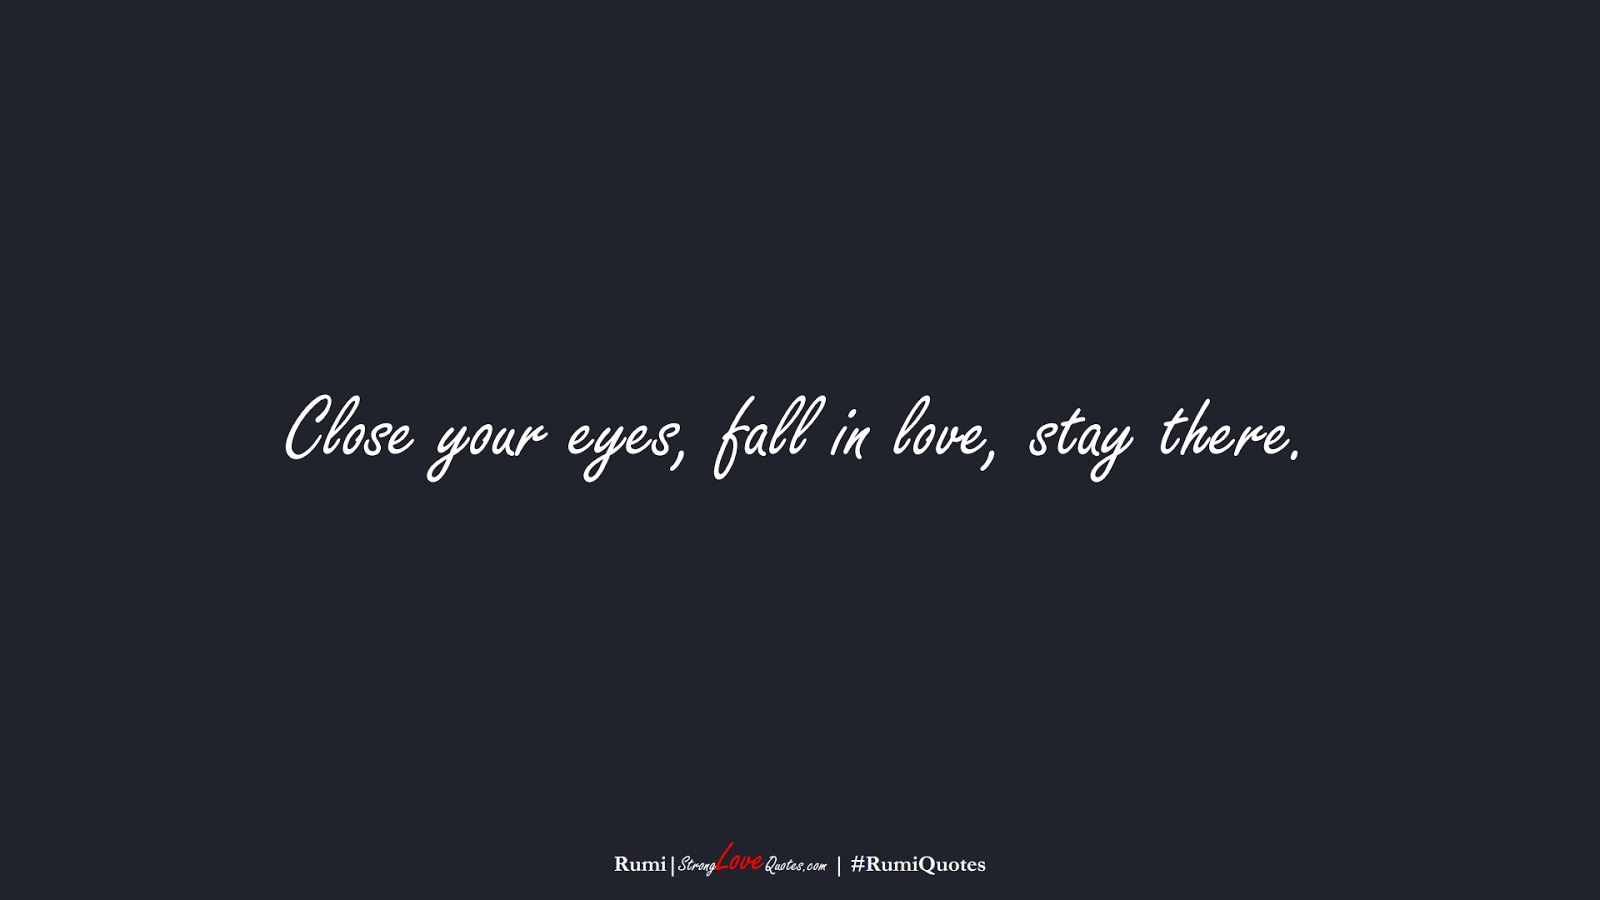 Close your eyes, fall in love, stay there. (Rumi);  #RumiQuotes